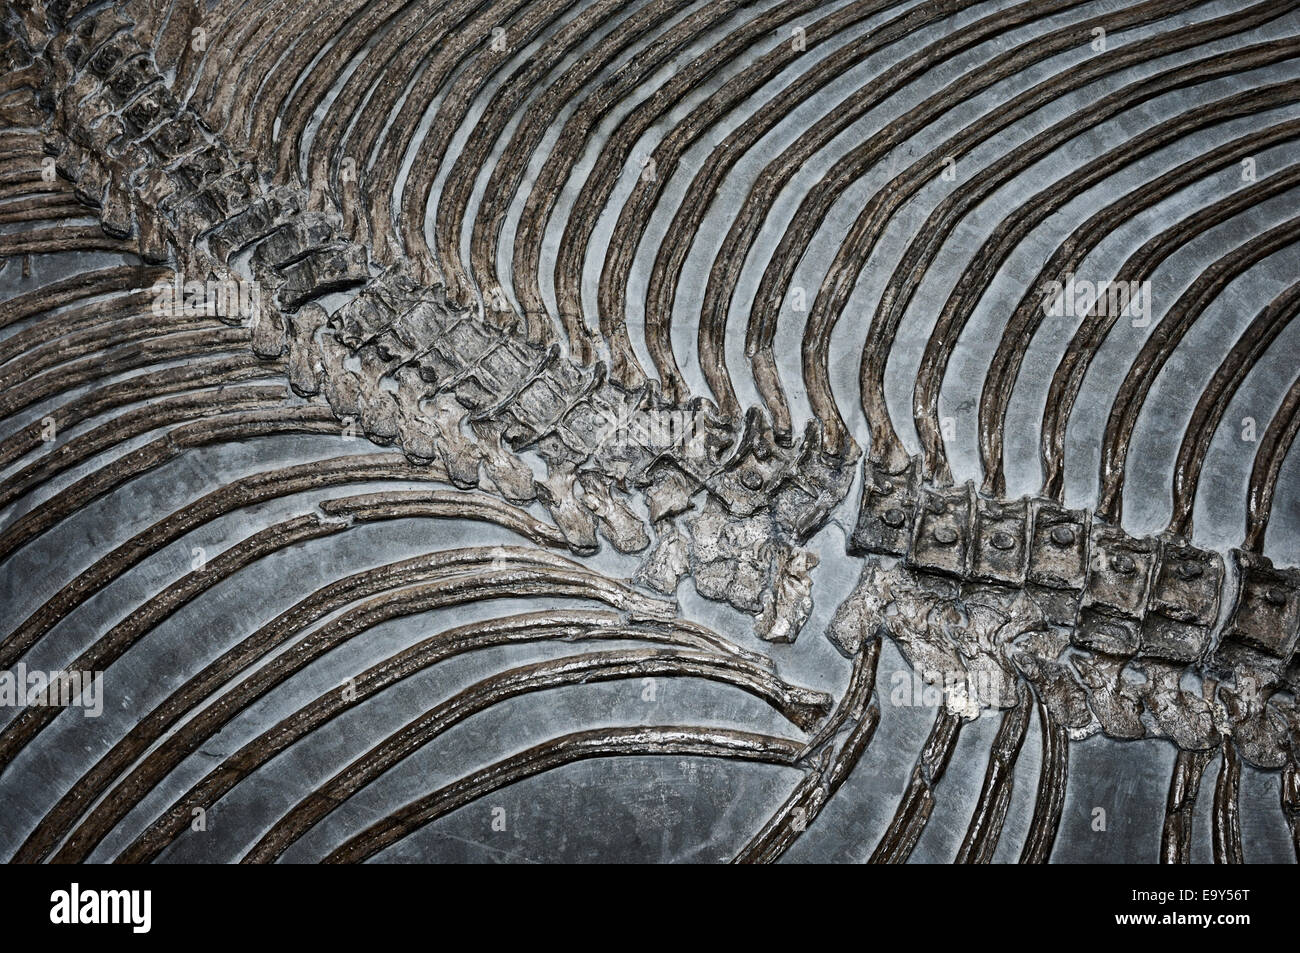 Fossilized dinosaur skeleton bones abstract closeup - Stock Image